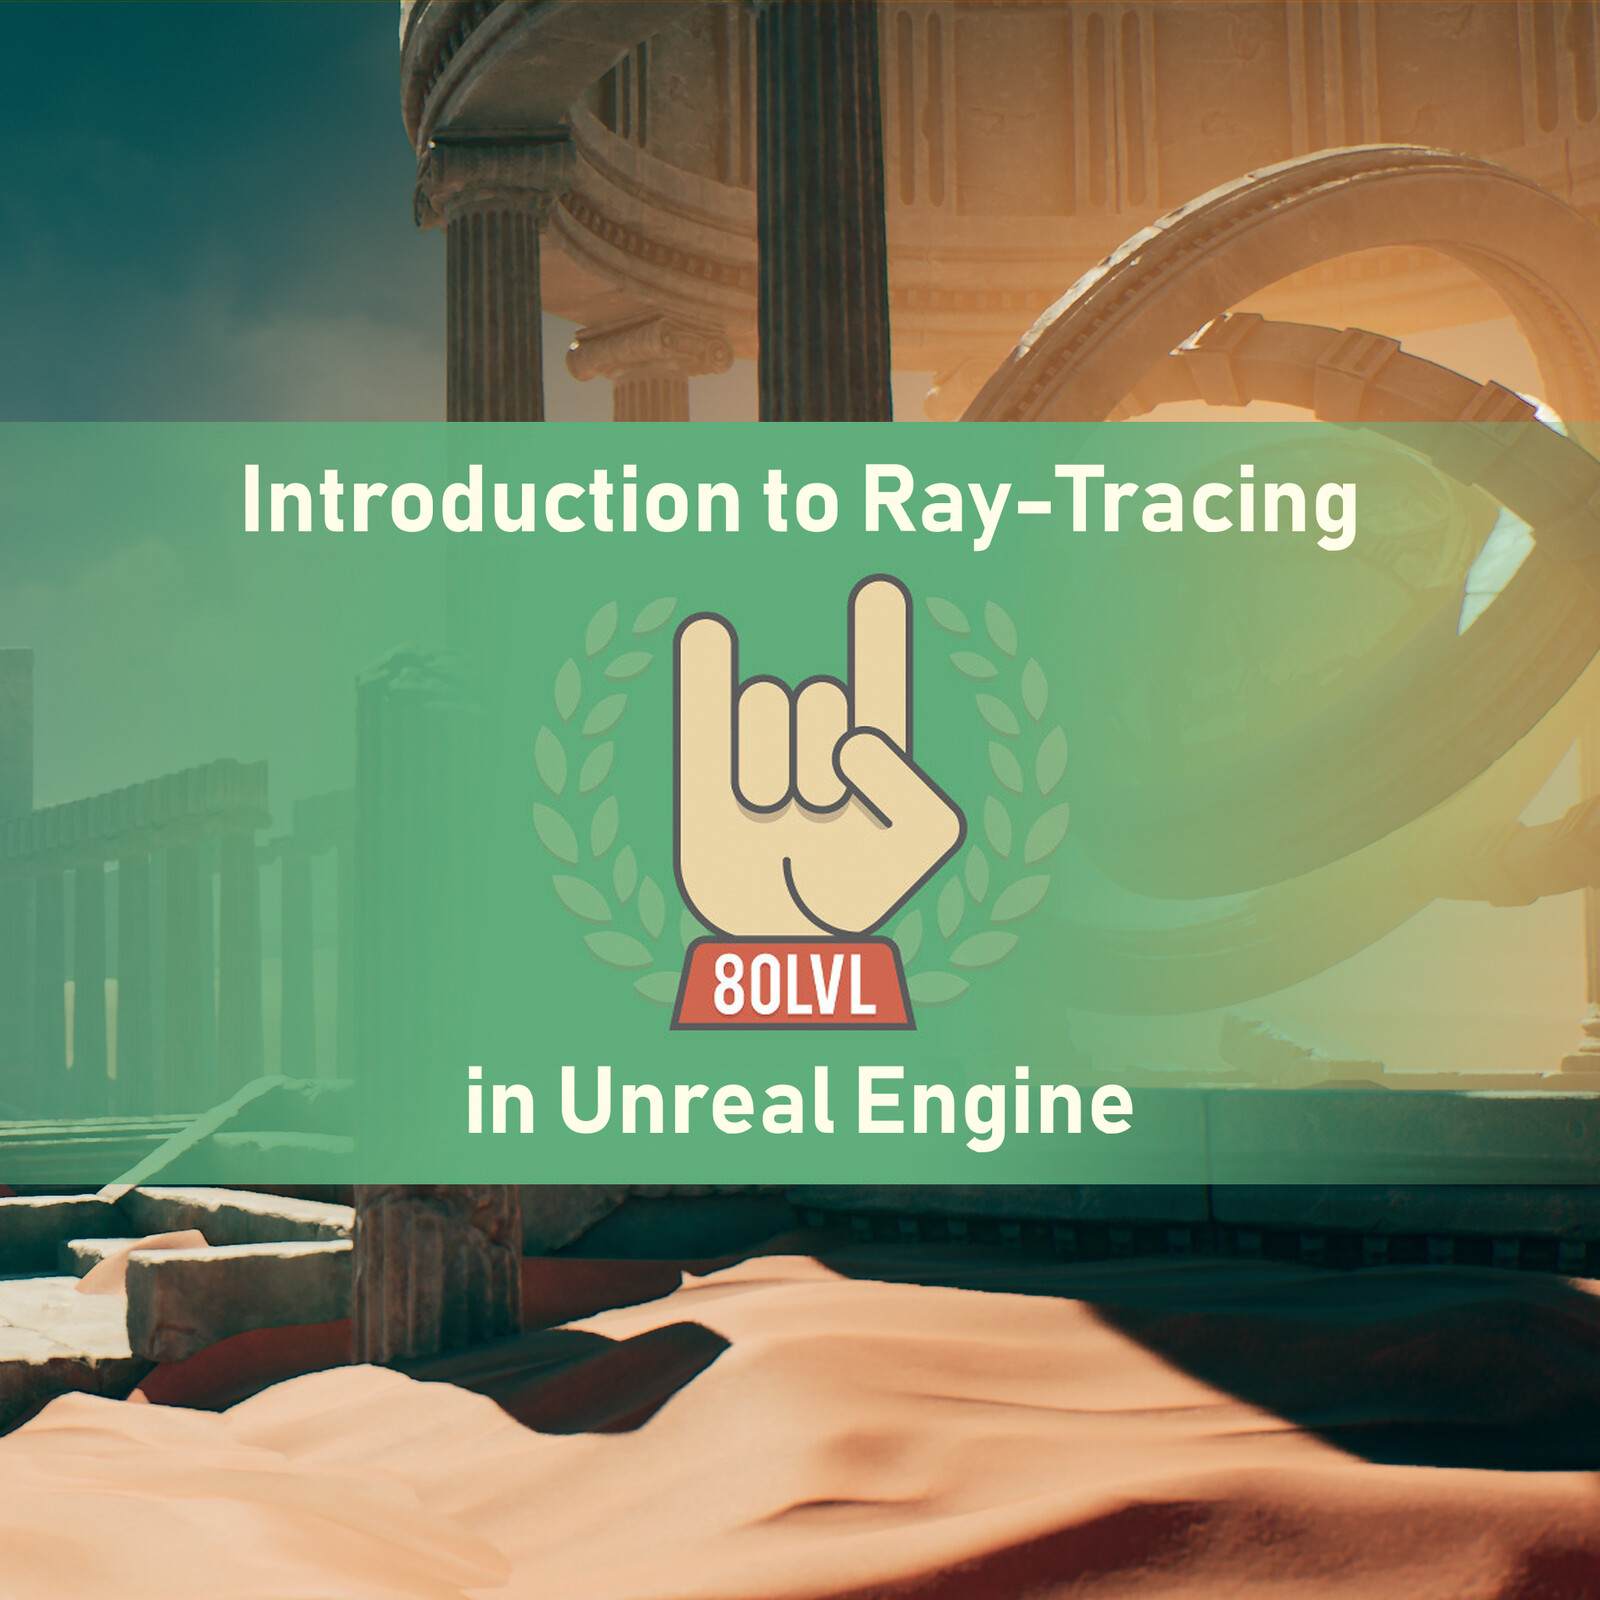 80.lv Article - Introduction to Ray-Tracing in Unreal Engine